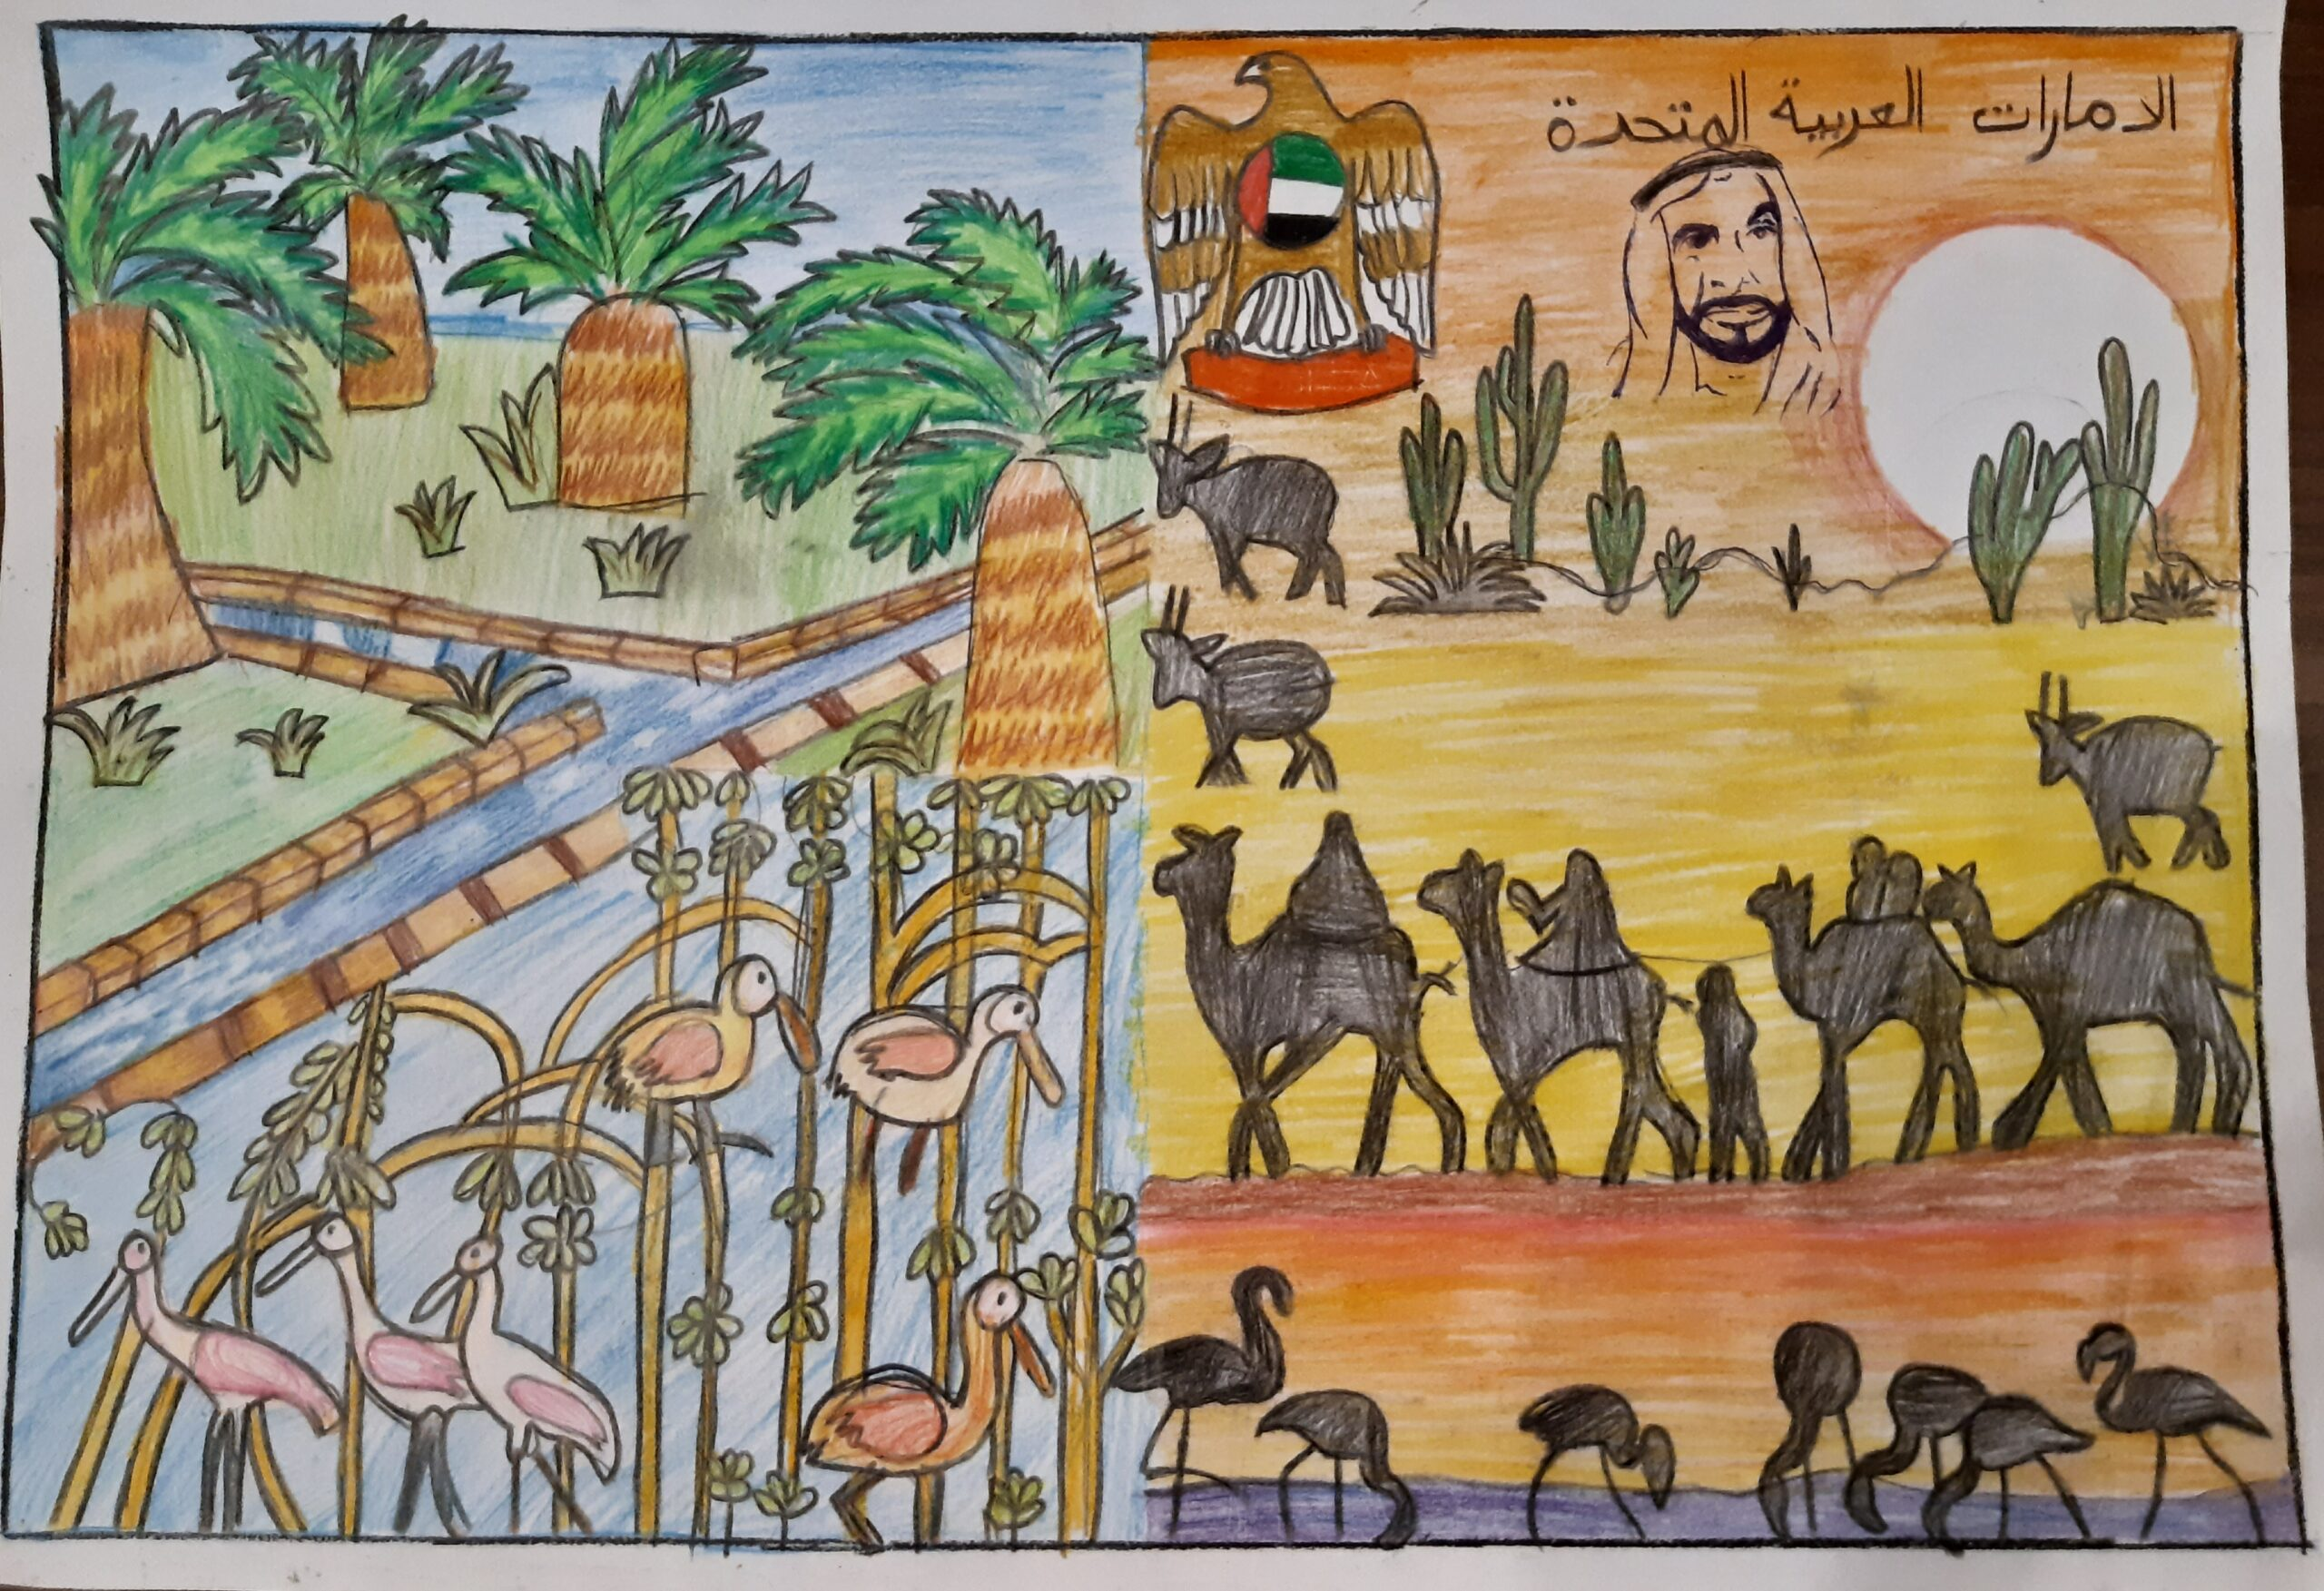 UAE Picturesque Diverse Flora And Fauna by Vidhi Ahuja